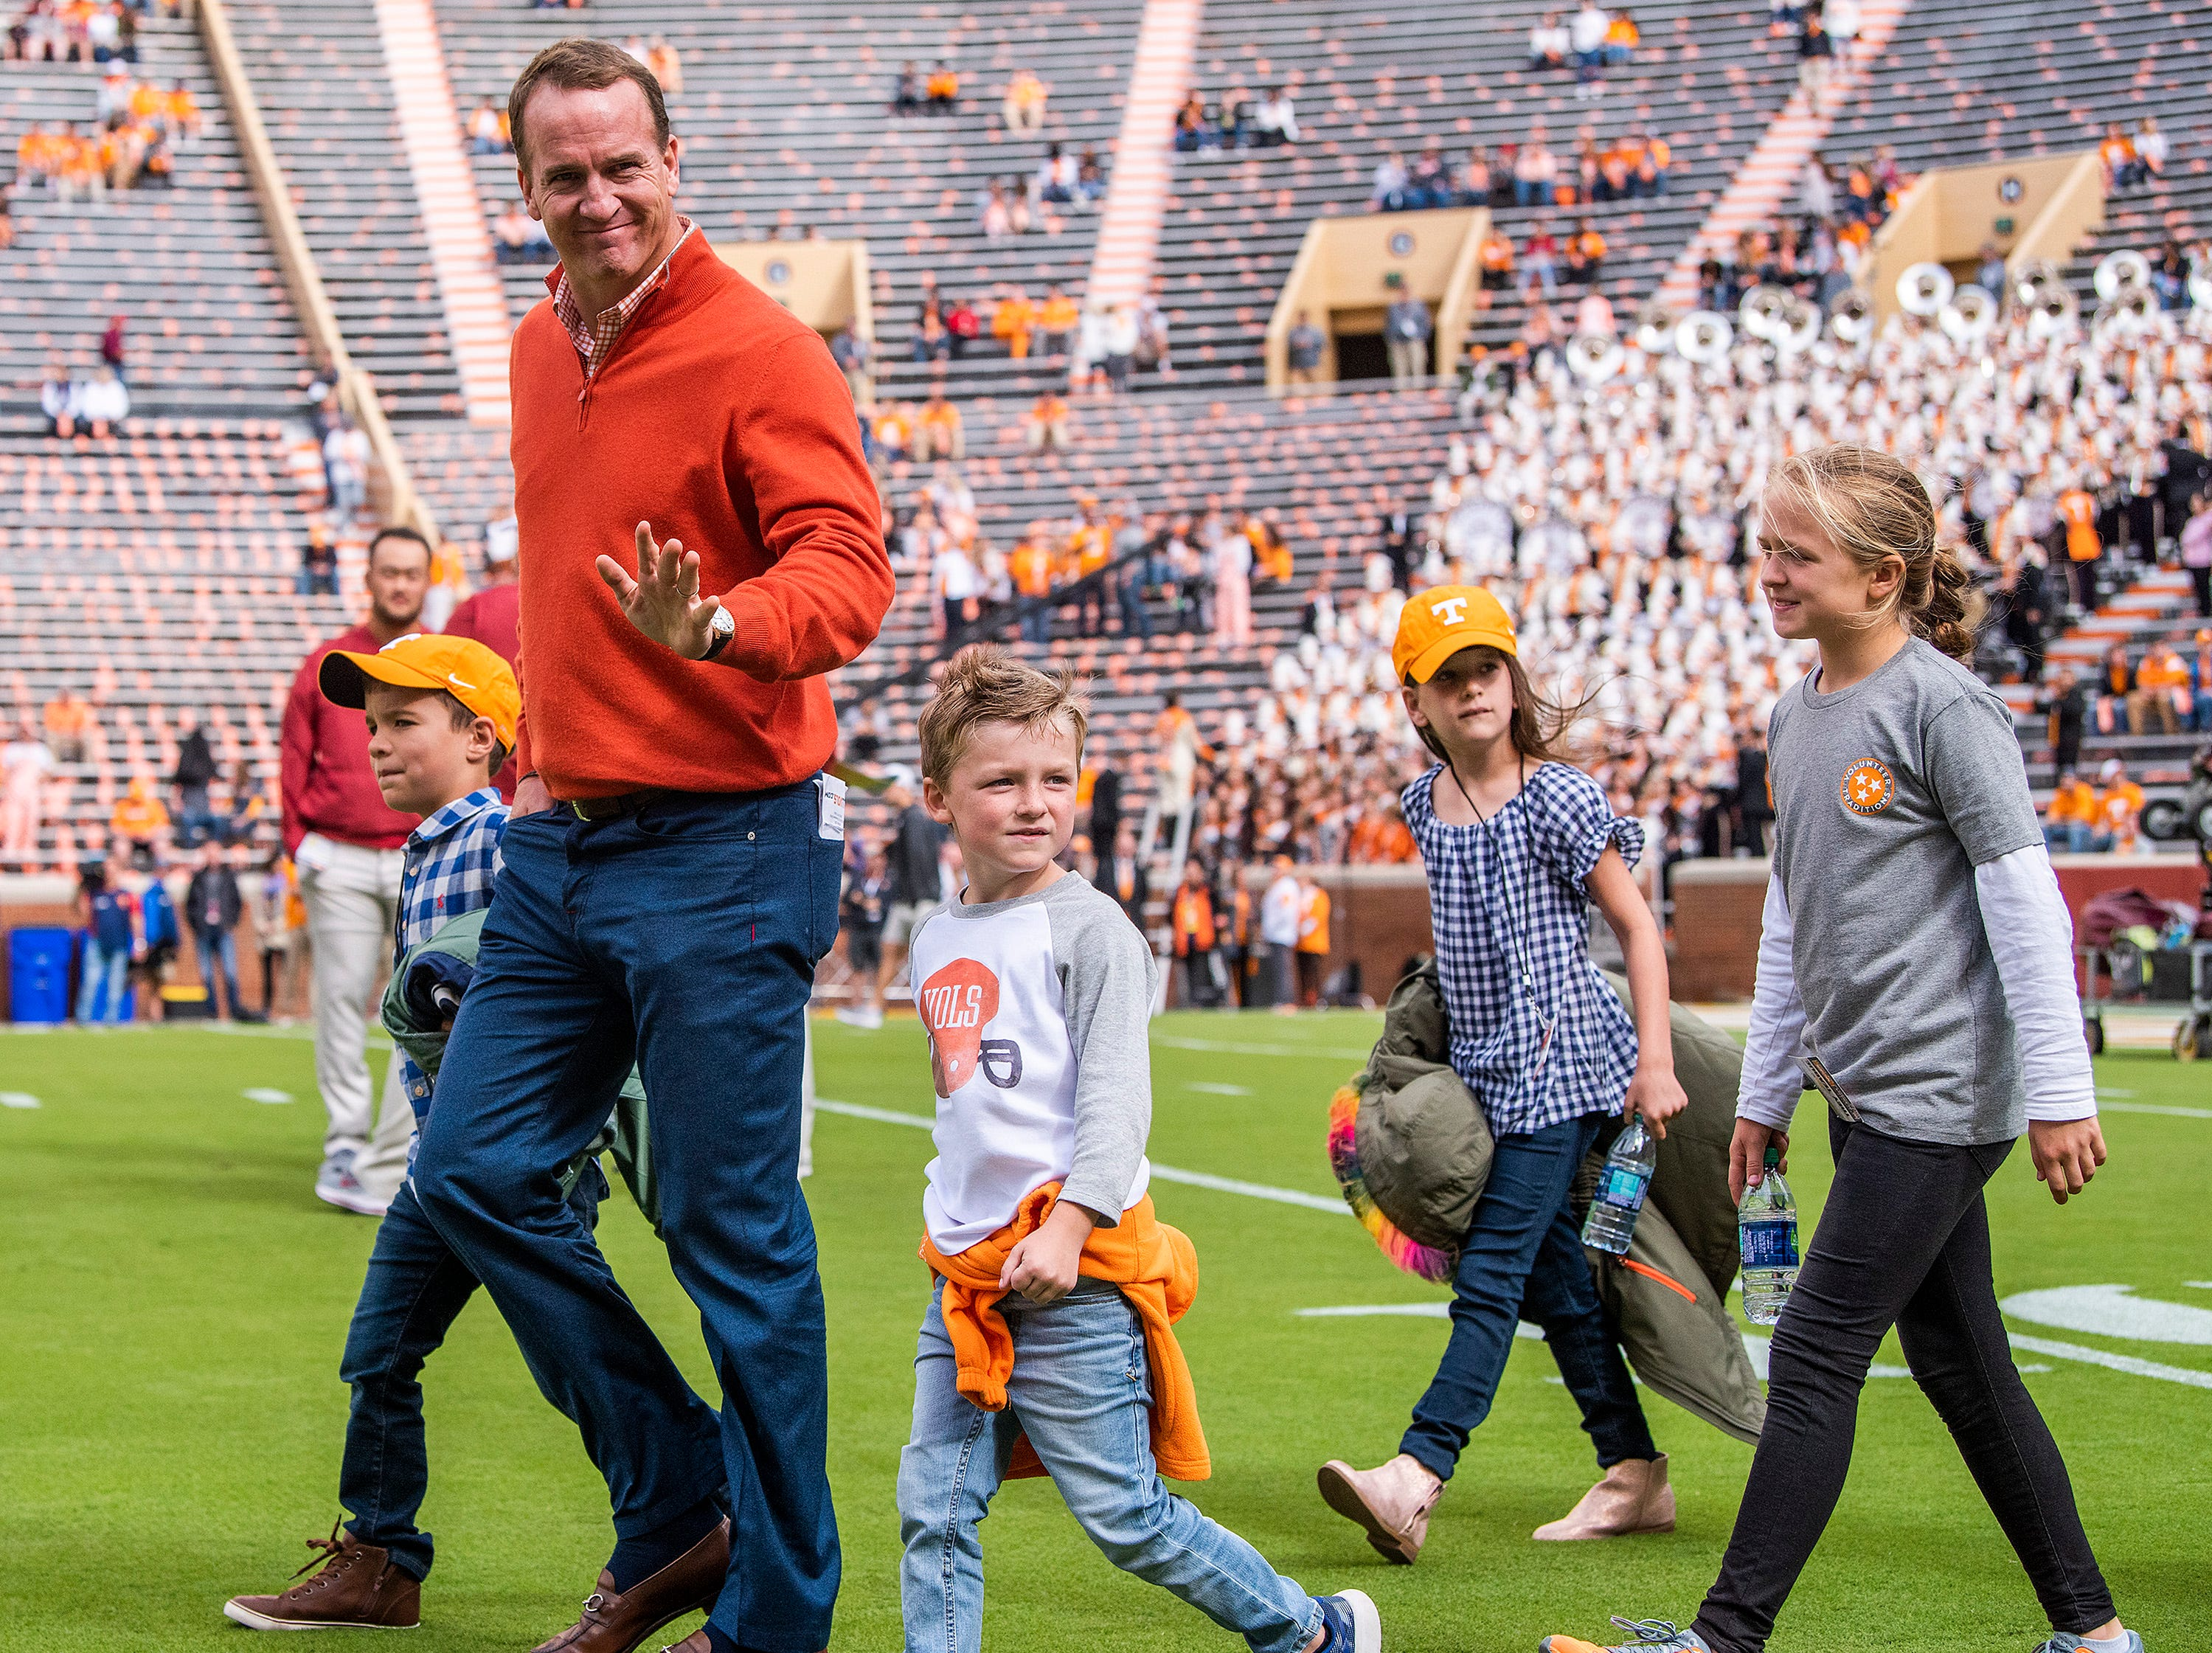 Payton Manning walks the field with his family before the Alabama vs. Tennessee game at Neyland Stadium in Knoxville, Tn., on Saturday October 20, 2018.